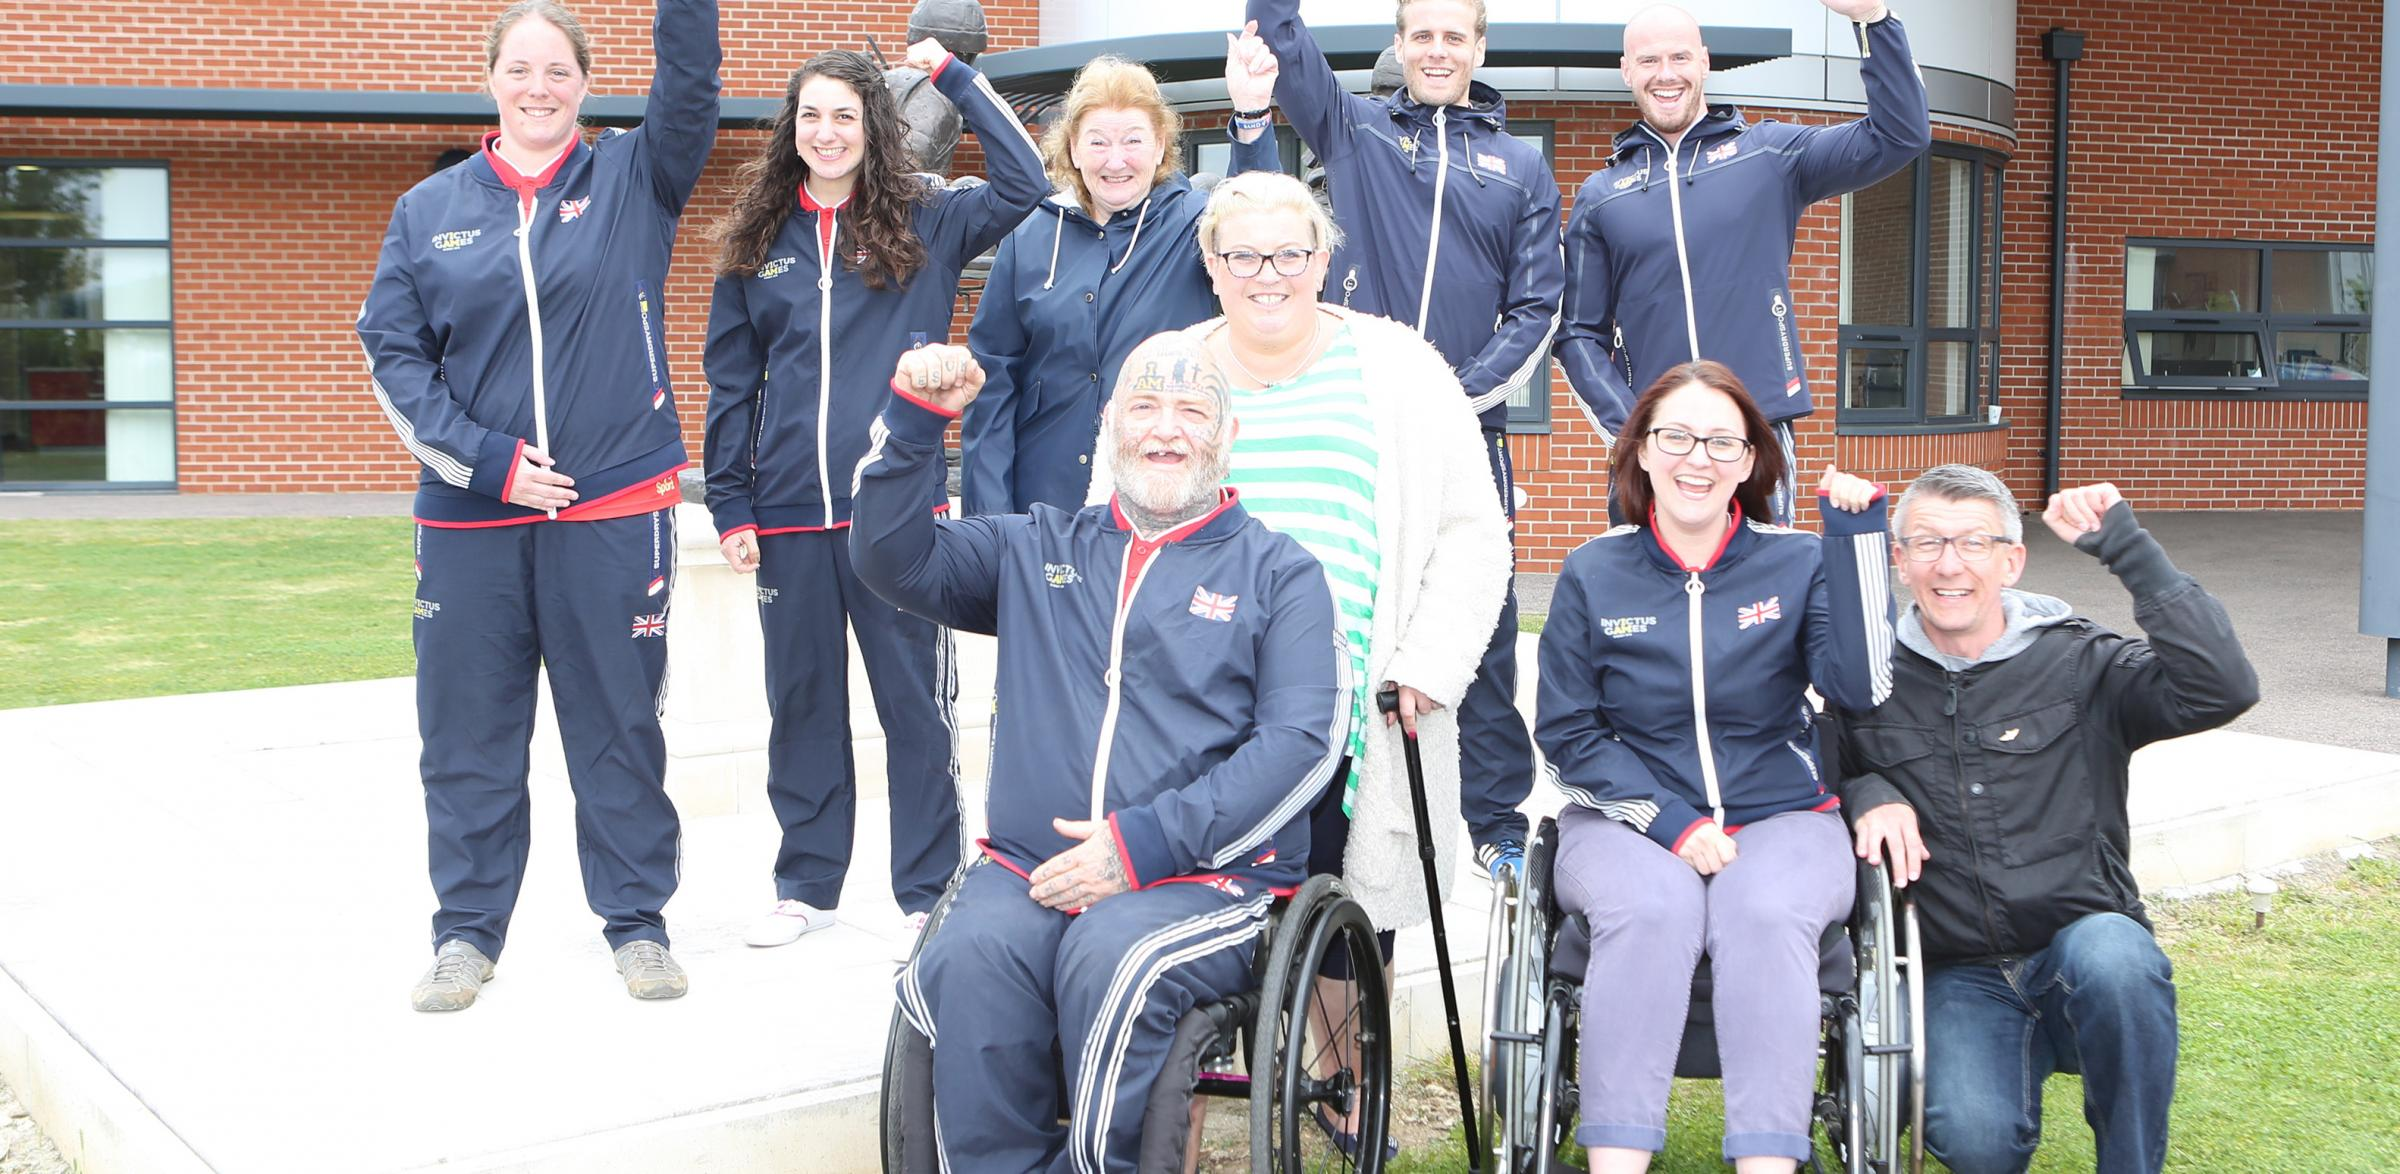 Cheer - the Invictus Games Team GB athletes from East Anglia and the East and West Midlands at the Colchester Recovery Centre. Paul Guest is at the front with wife, Michelle